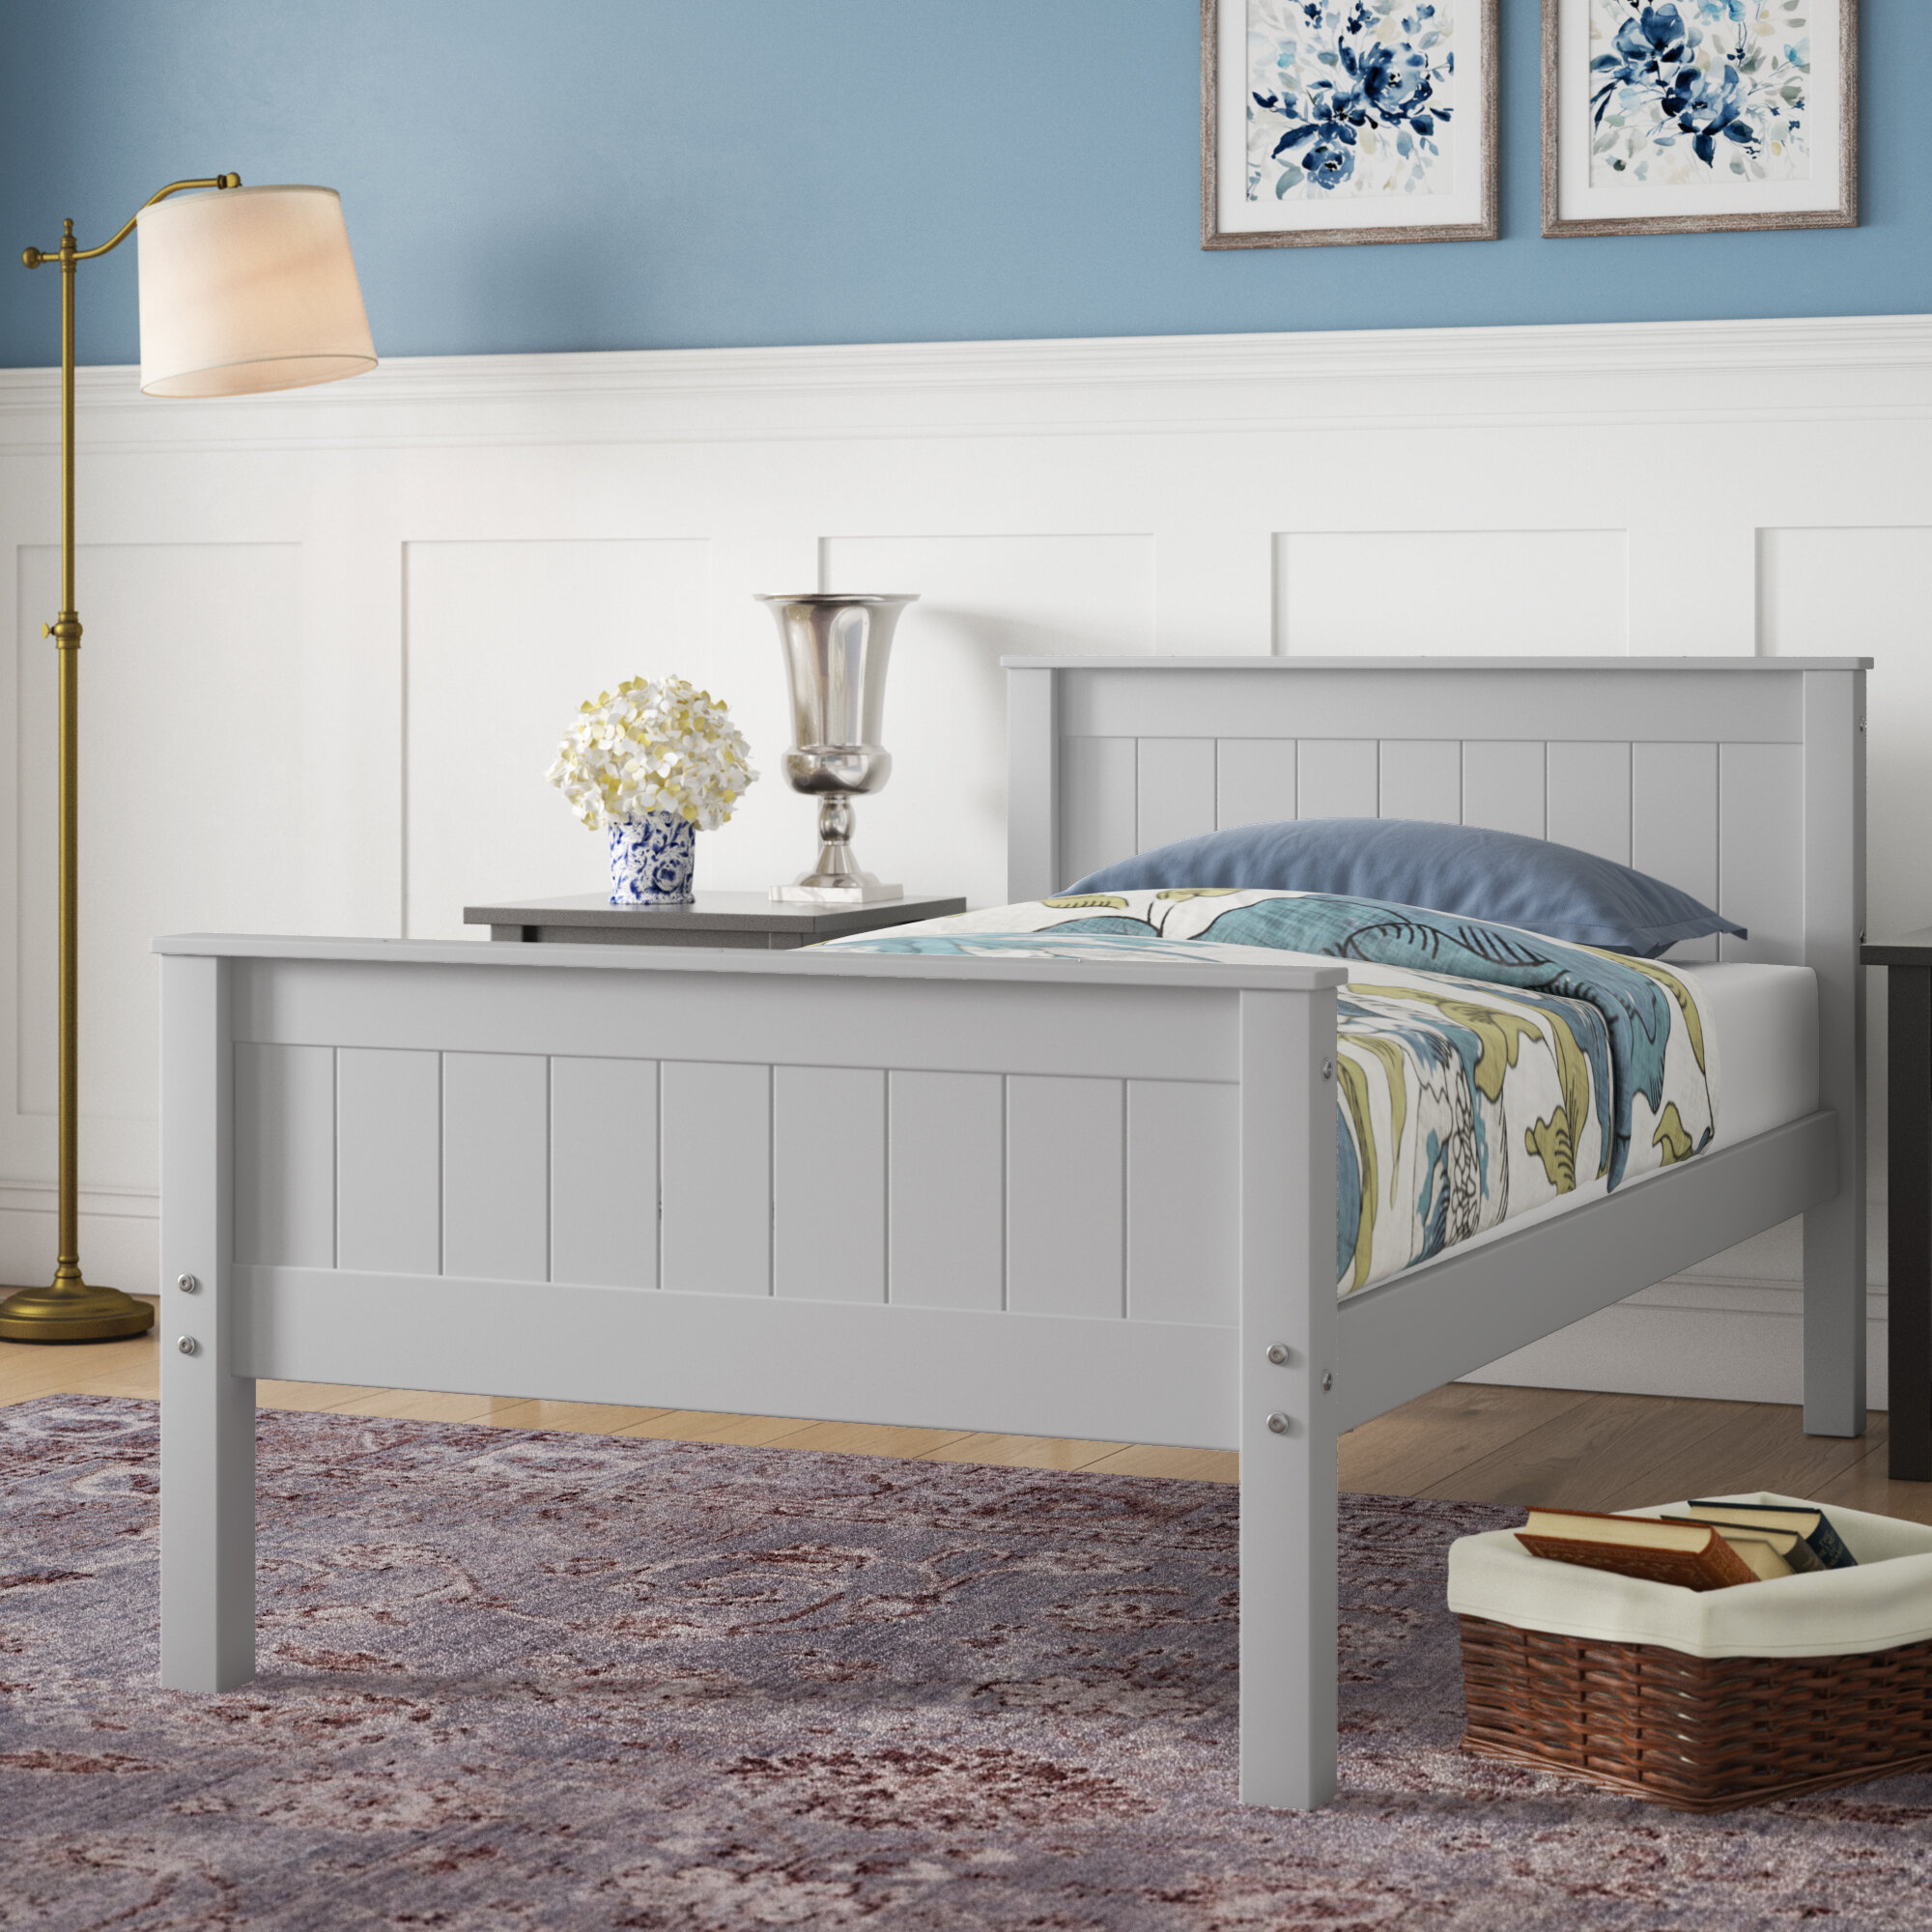 Full Size Kids Beds Free Shipping Over 35 Wayfair